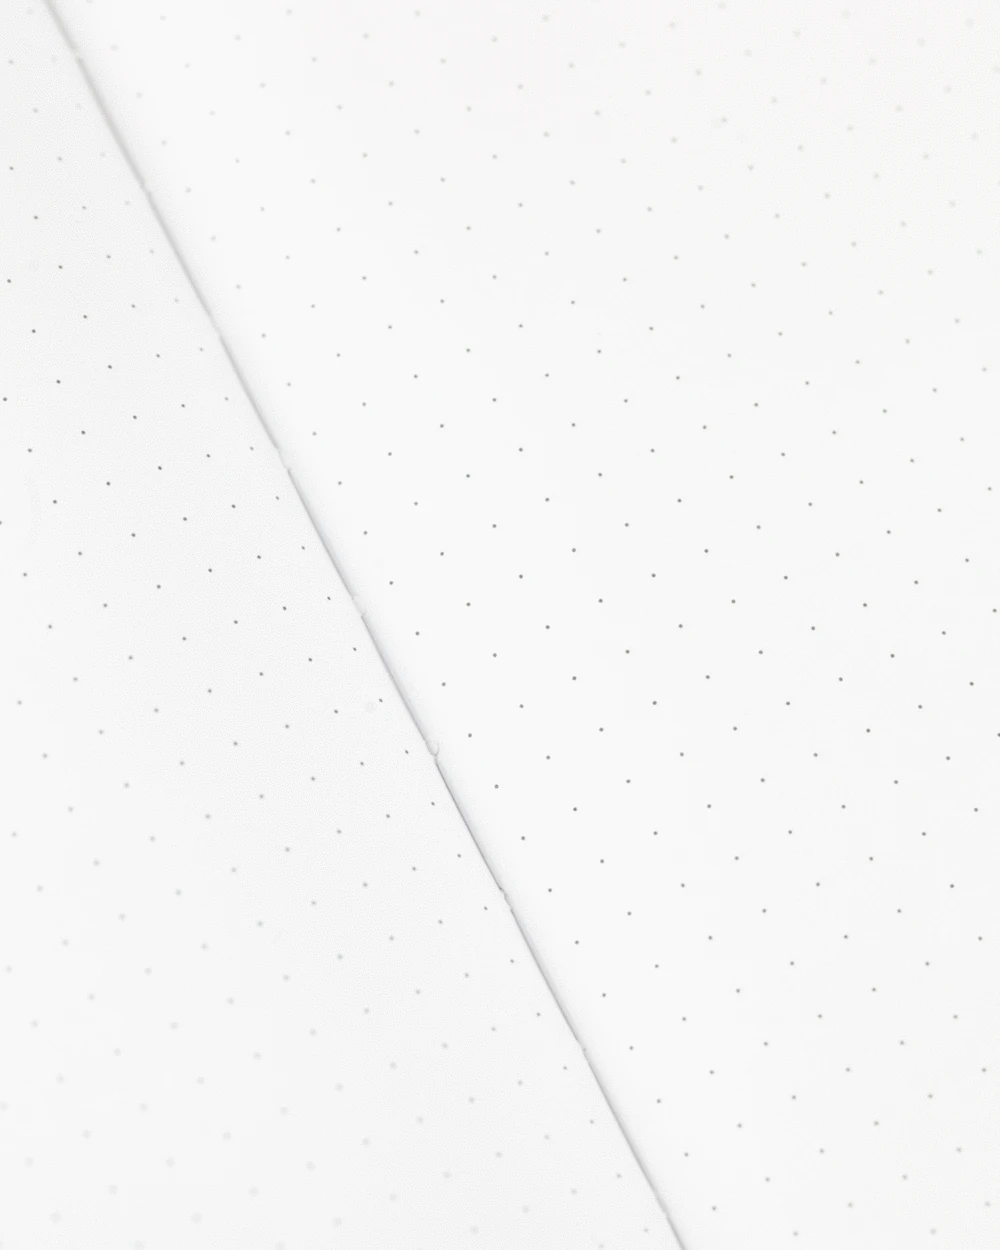 Dot grid pages